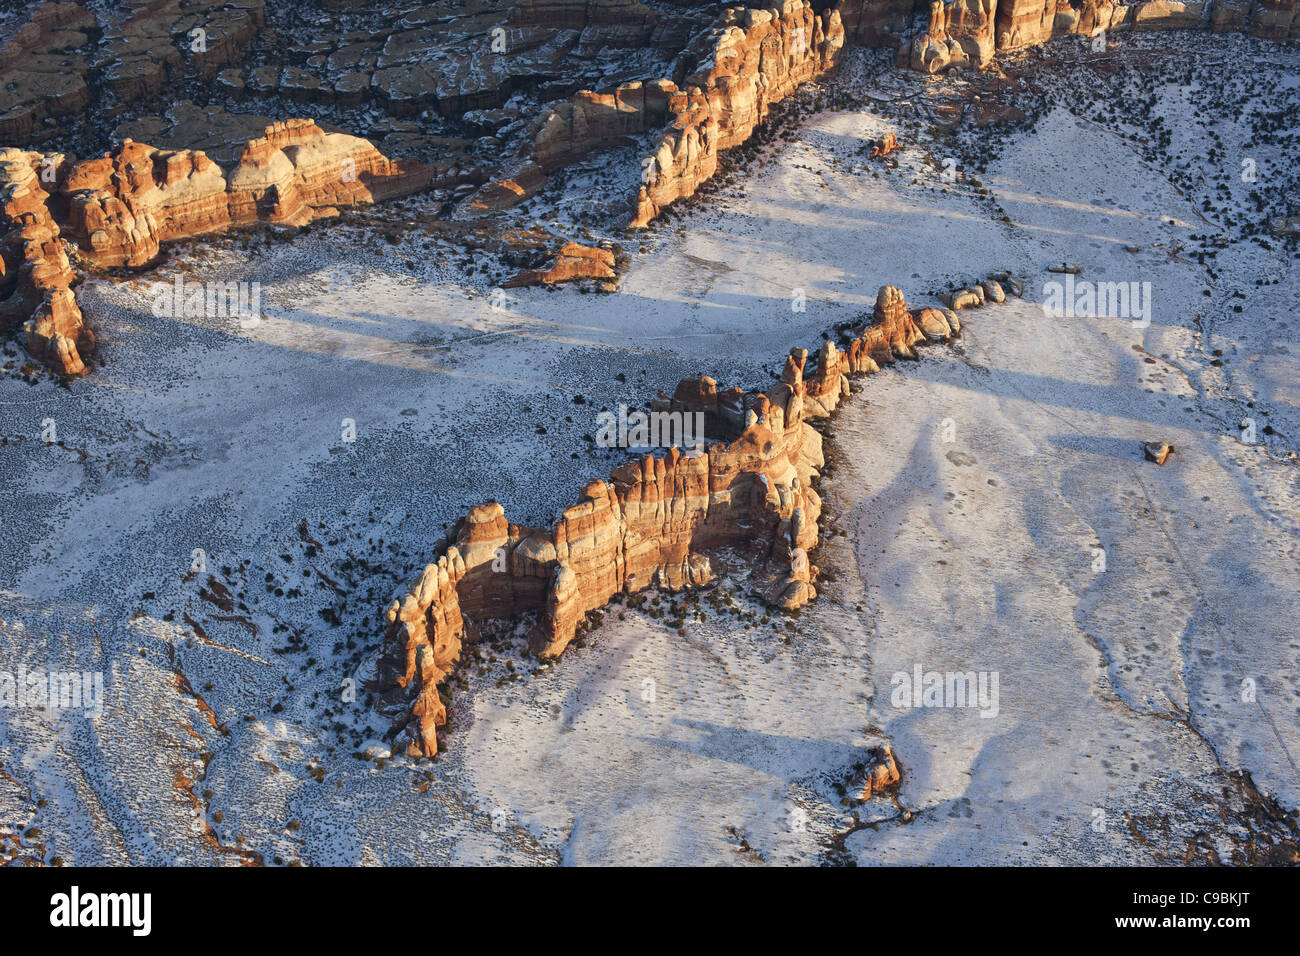 SANDSTONE OUTCROP IN A SNOWY FIELD (aerial view). Chesler Park Peak in Canyonlands National Park, San Juan County, - Stock Image